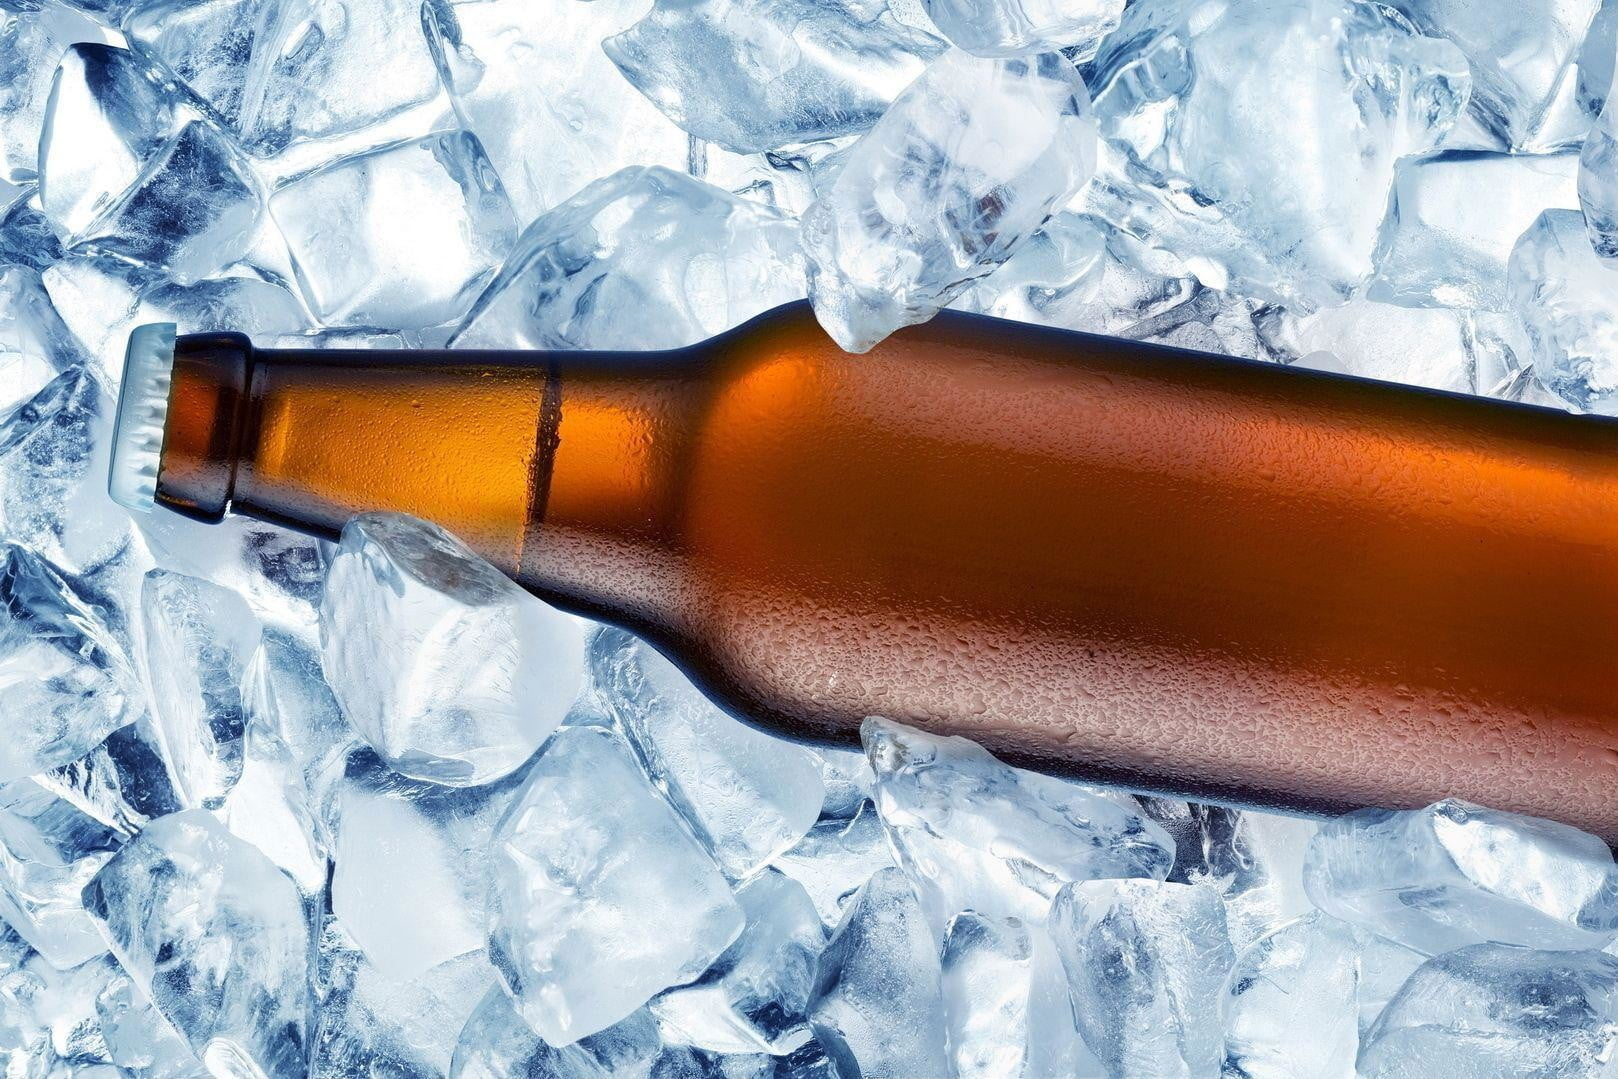 Augmented reality bottle labels could change the way you view beer